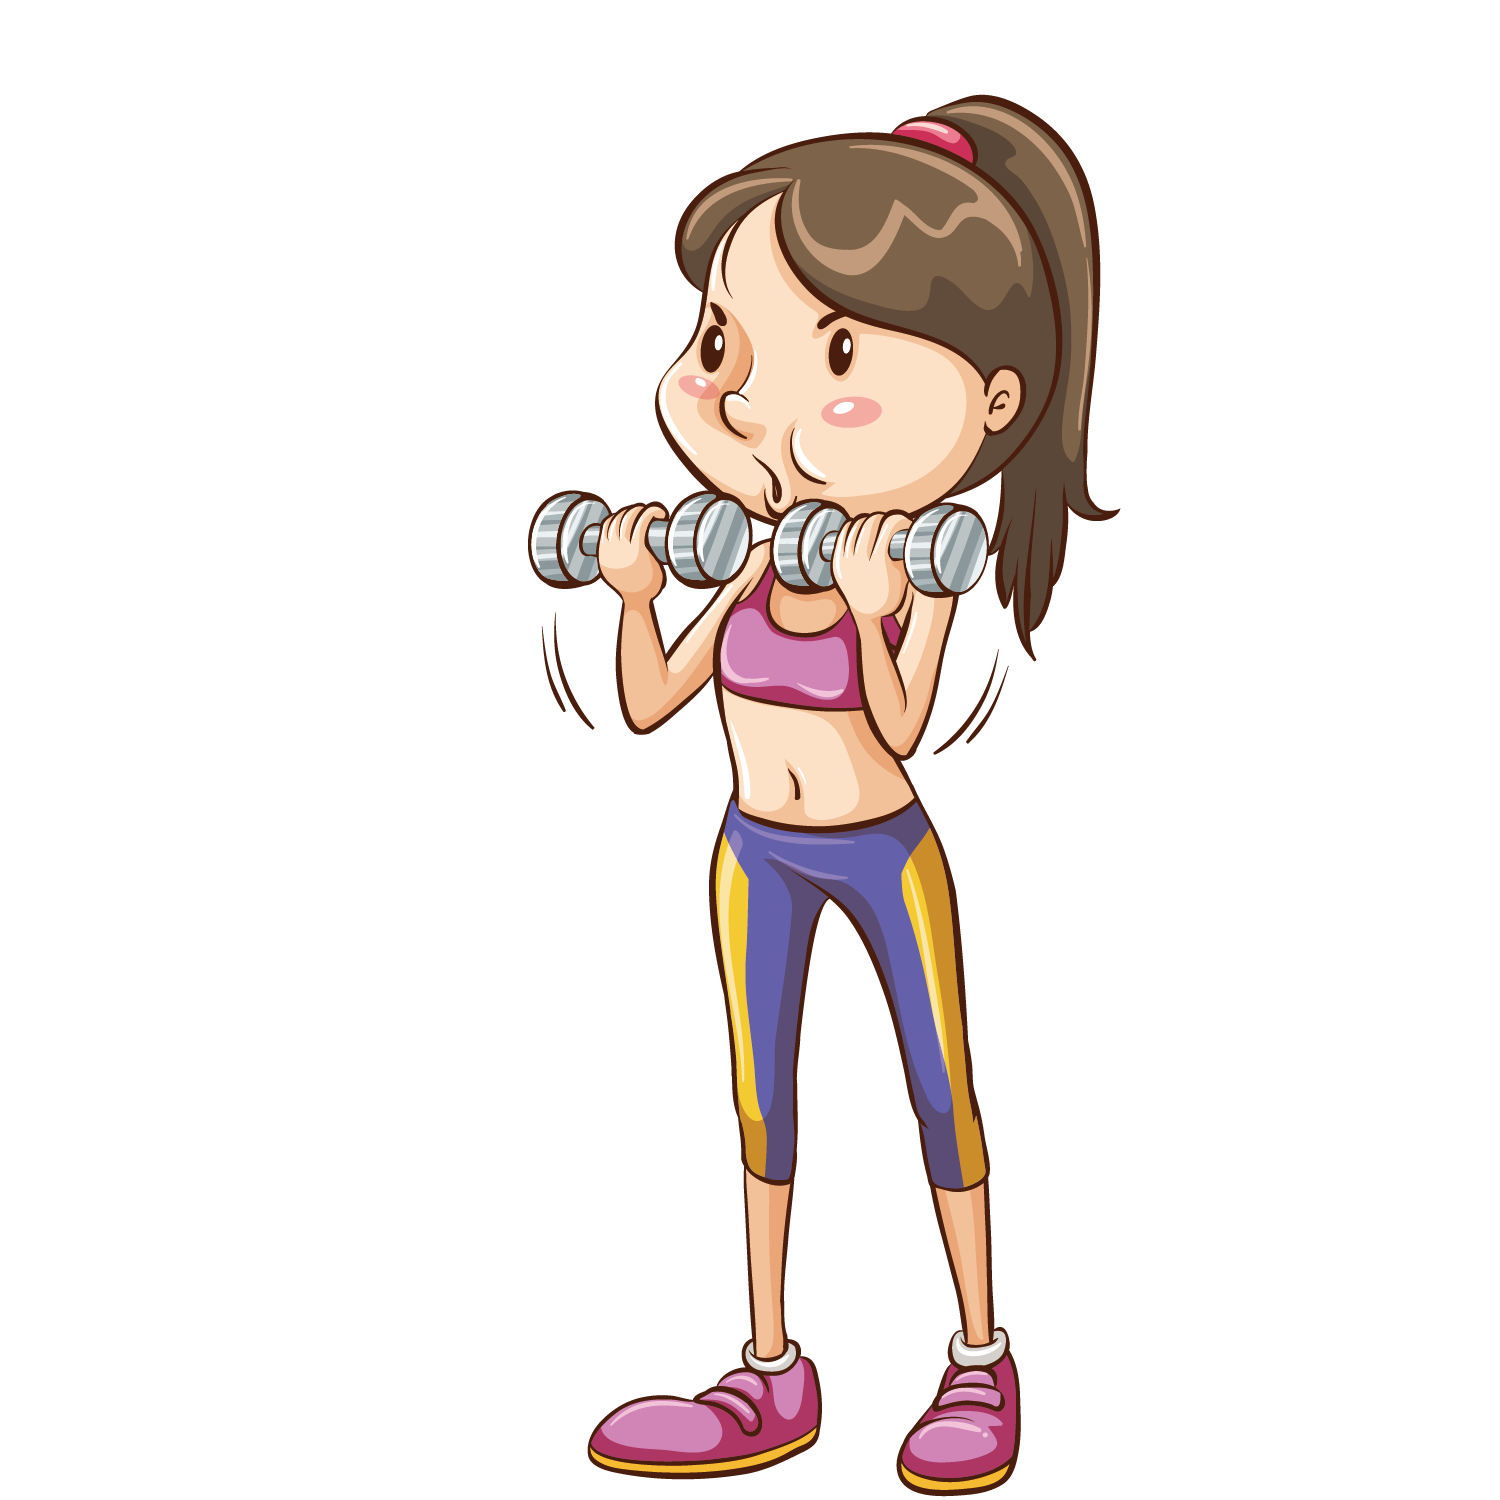 Dumbbells drawing at getdrawings. Dumbbell clipart hand holding